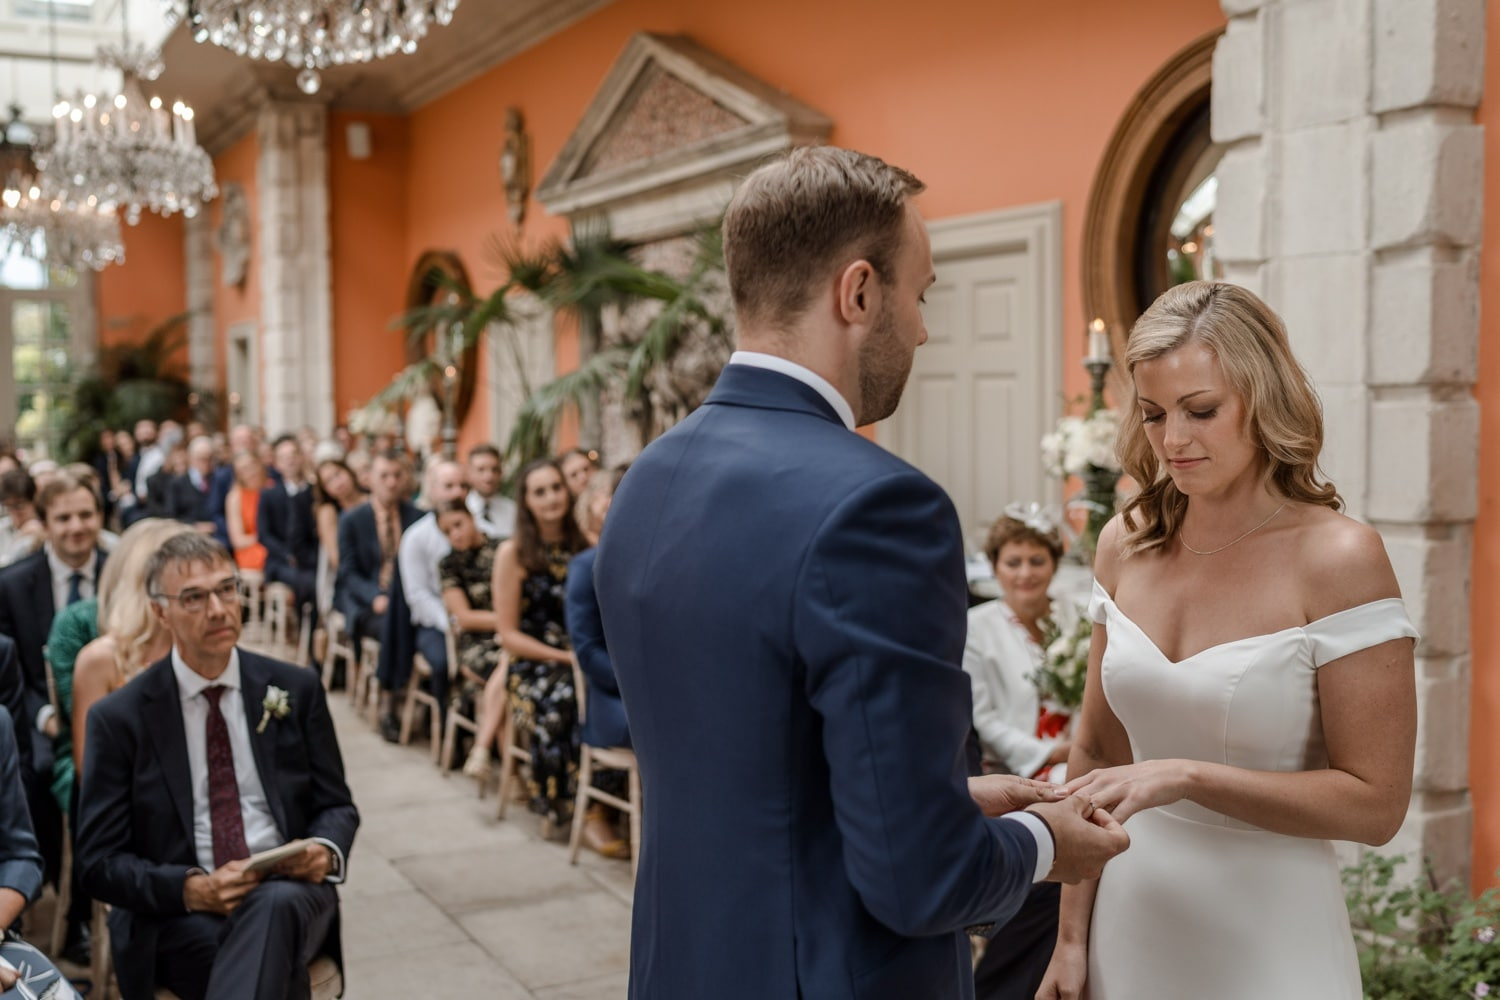 Marriage ceremony at the Orangery at Euridge Manor